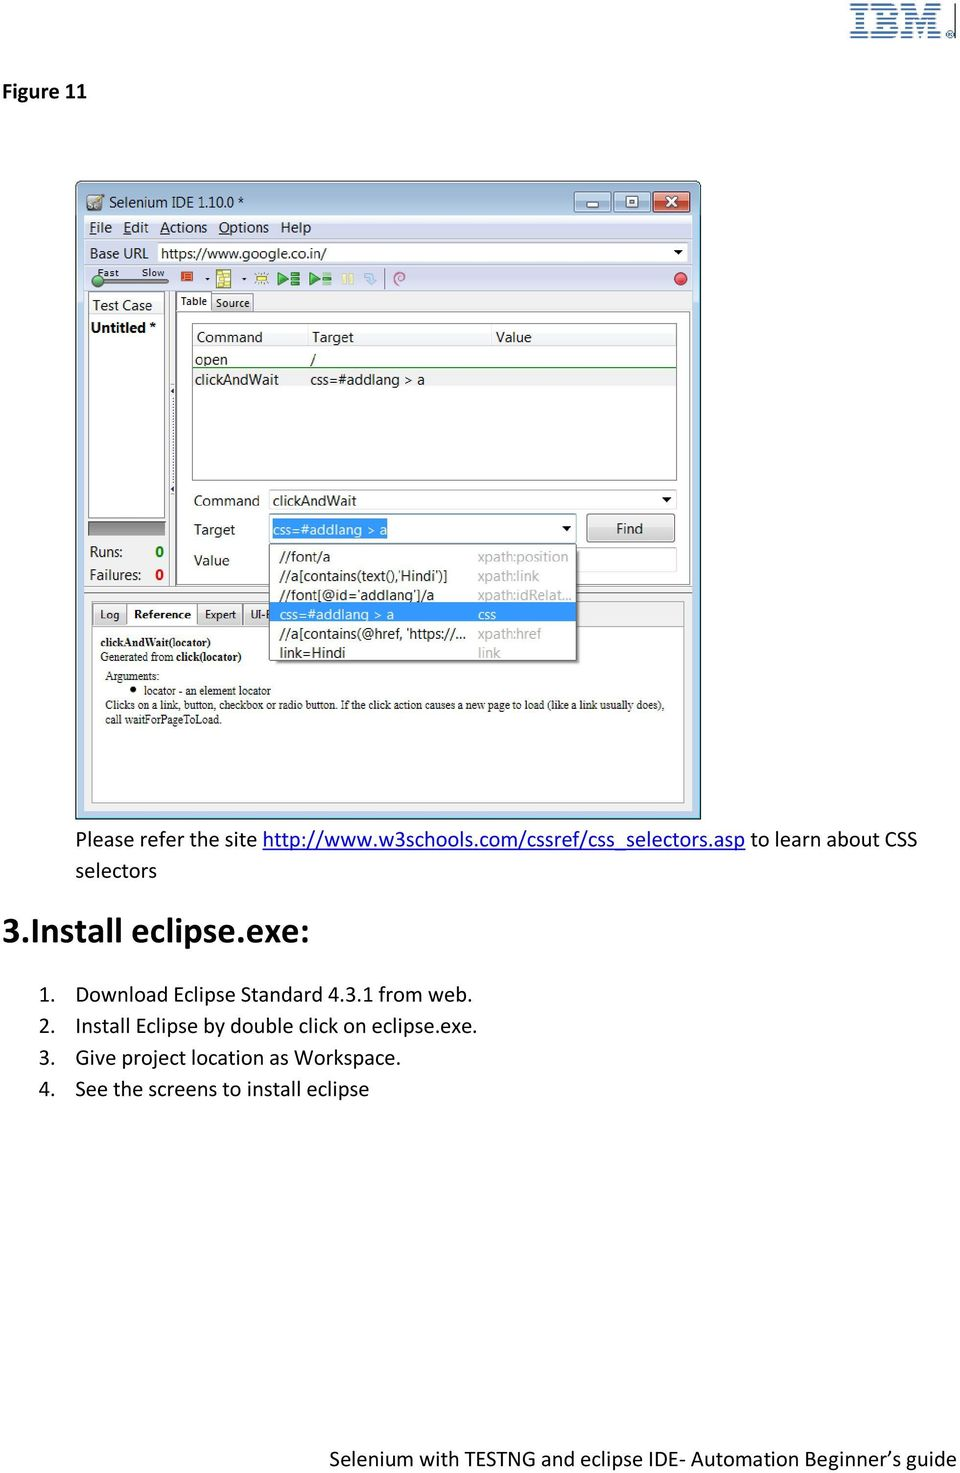 exe: 1. Download Eclipse Standard 4.3.1 from web. 2.